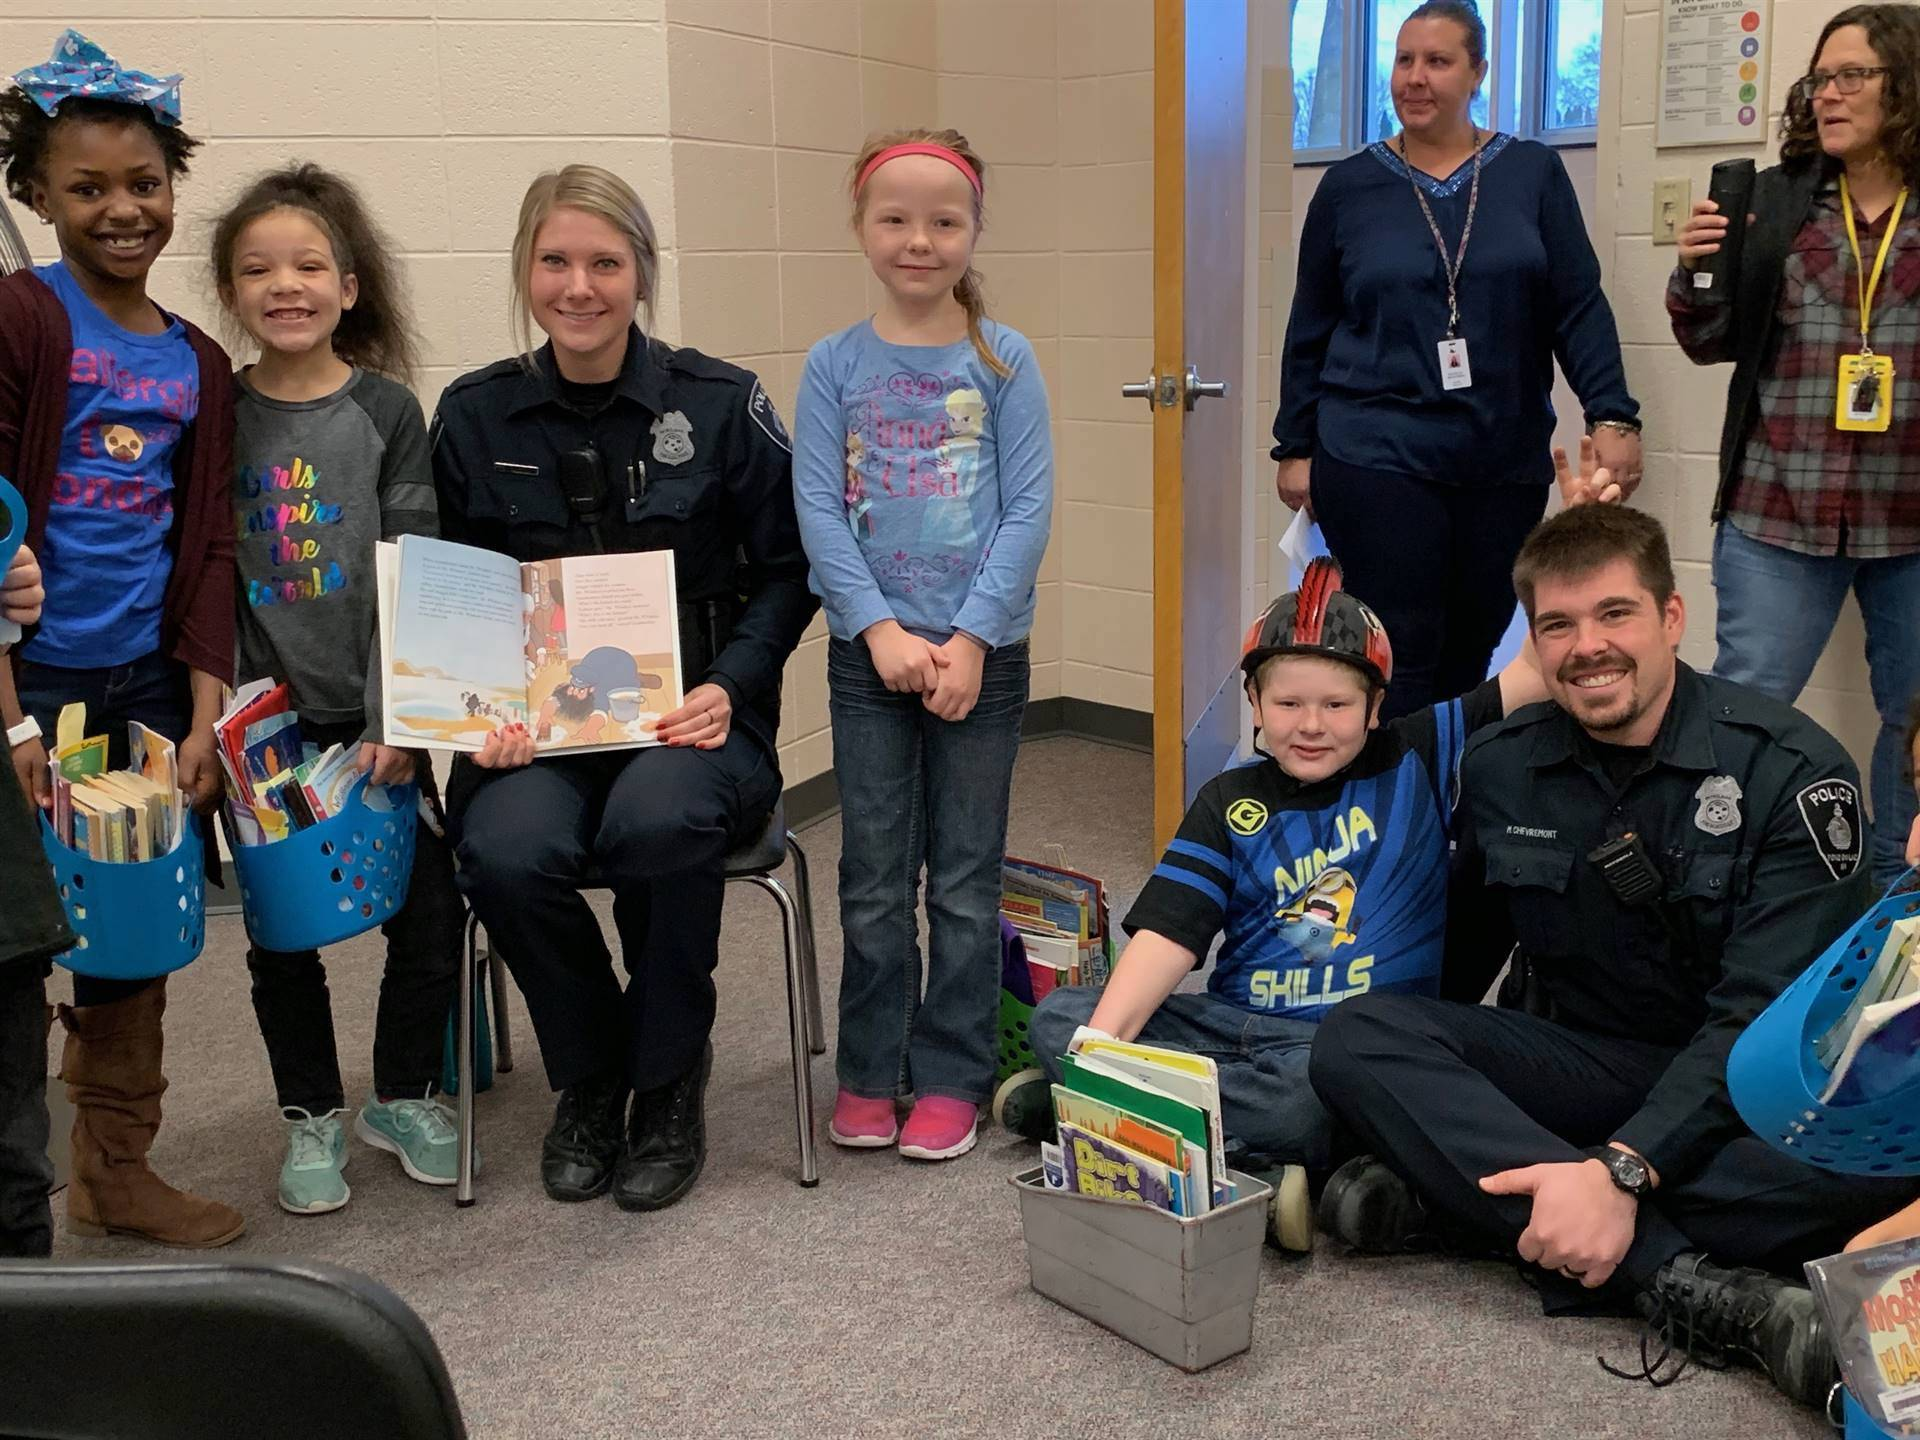 Riverside reading with two police officers